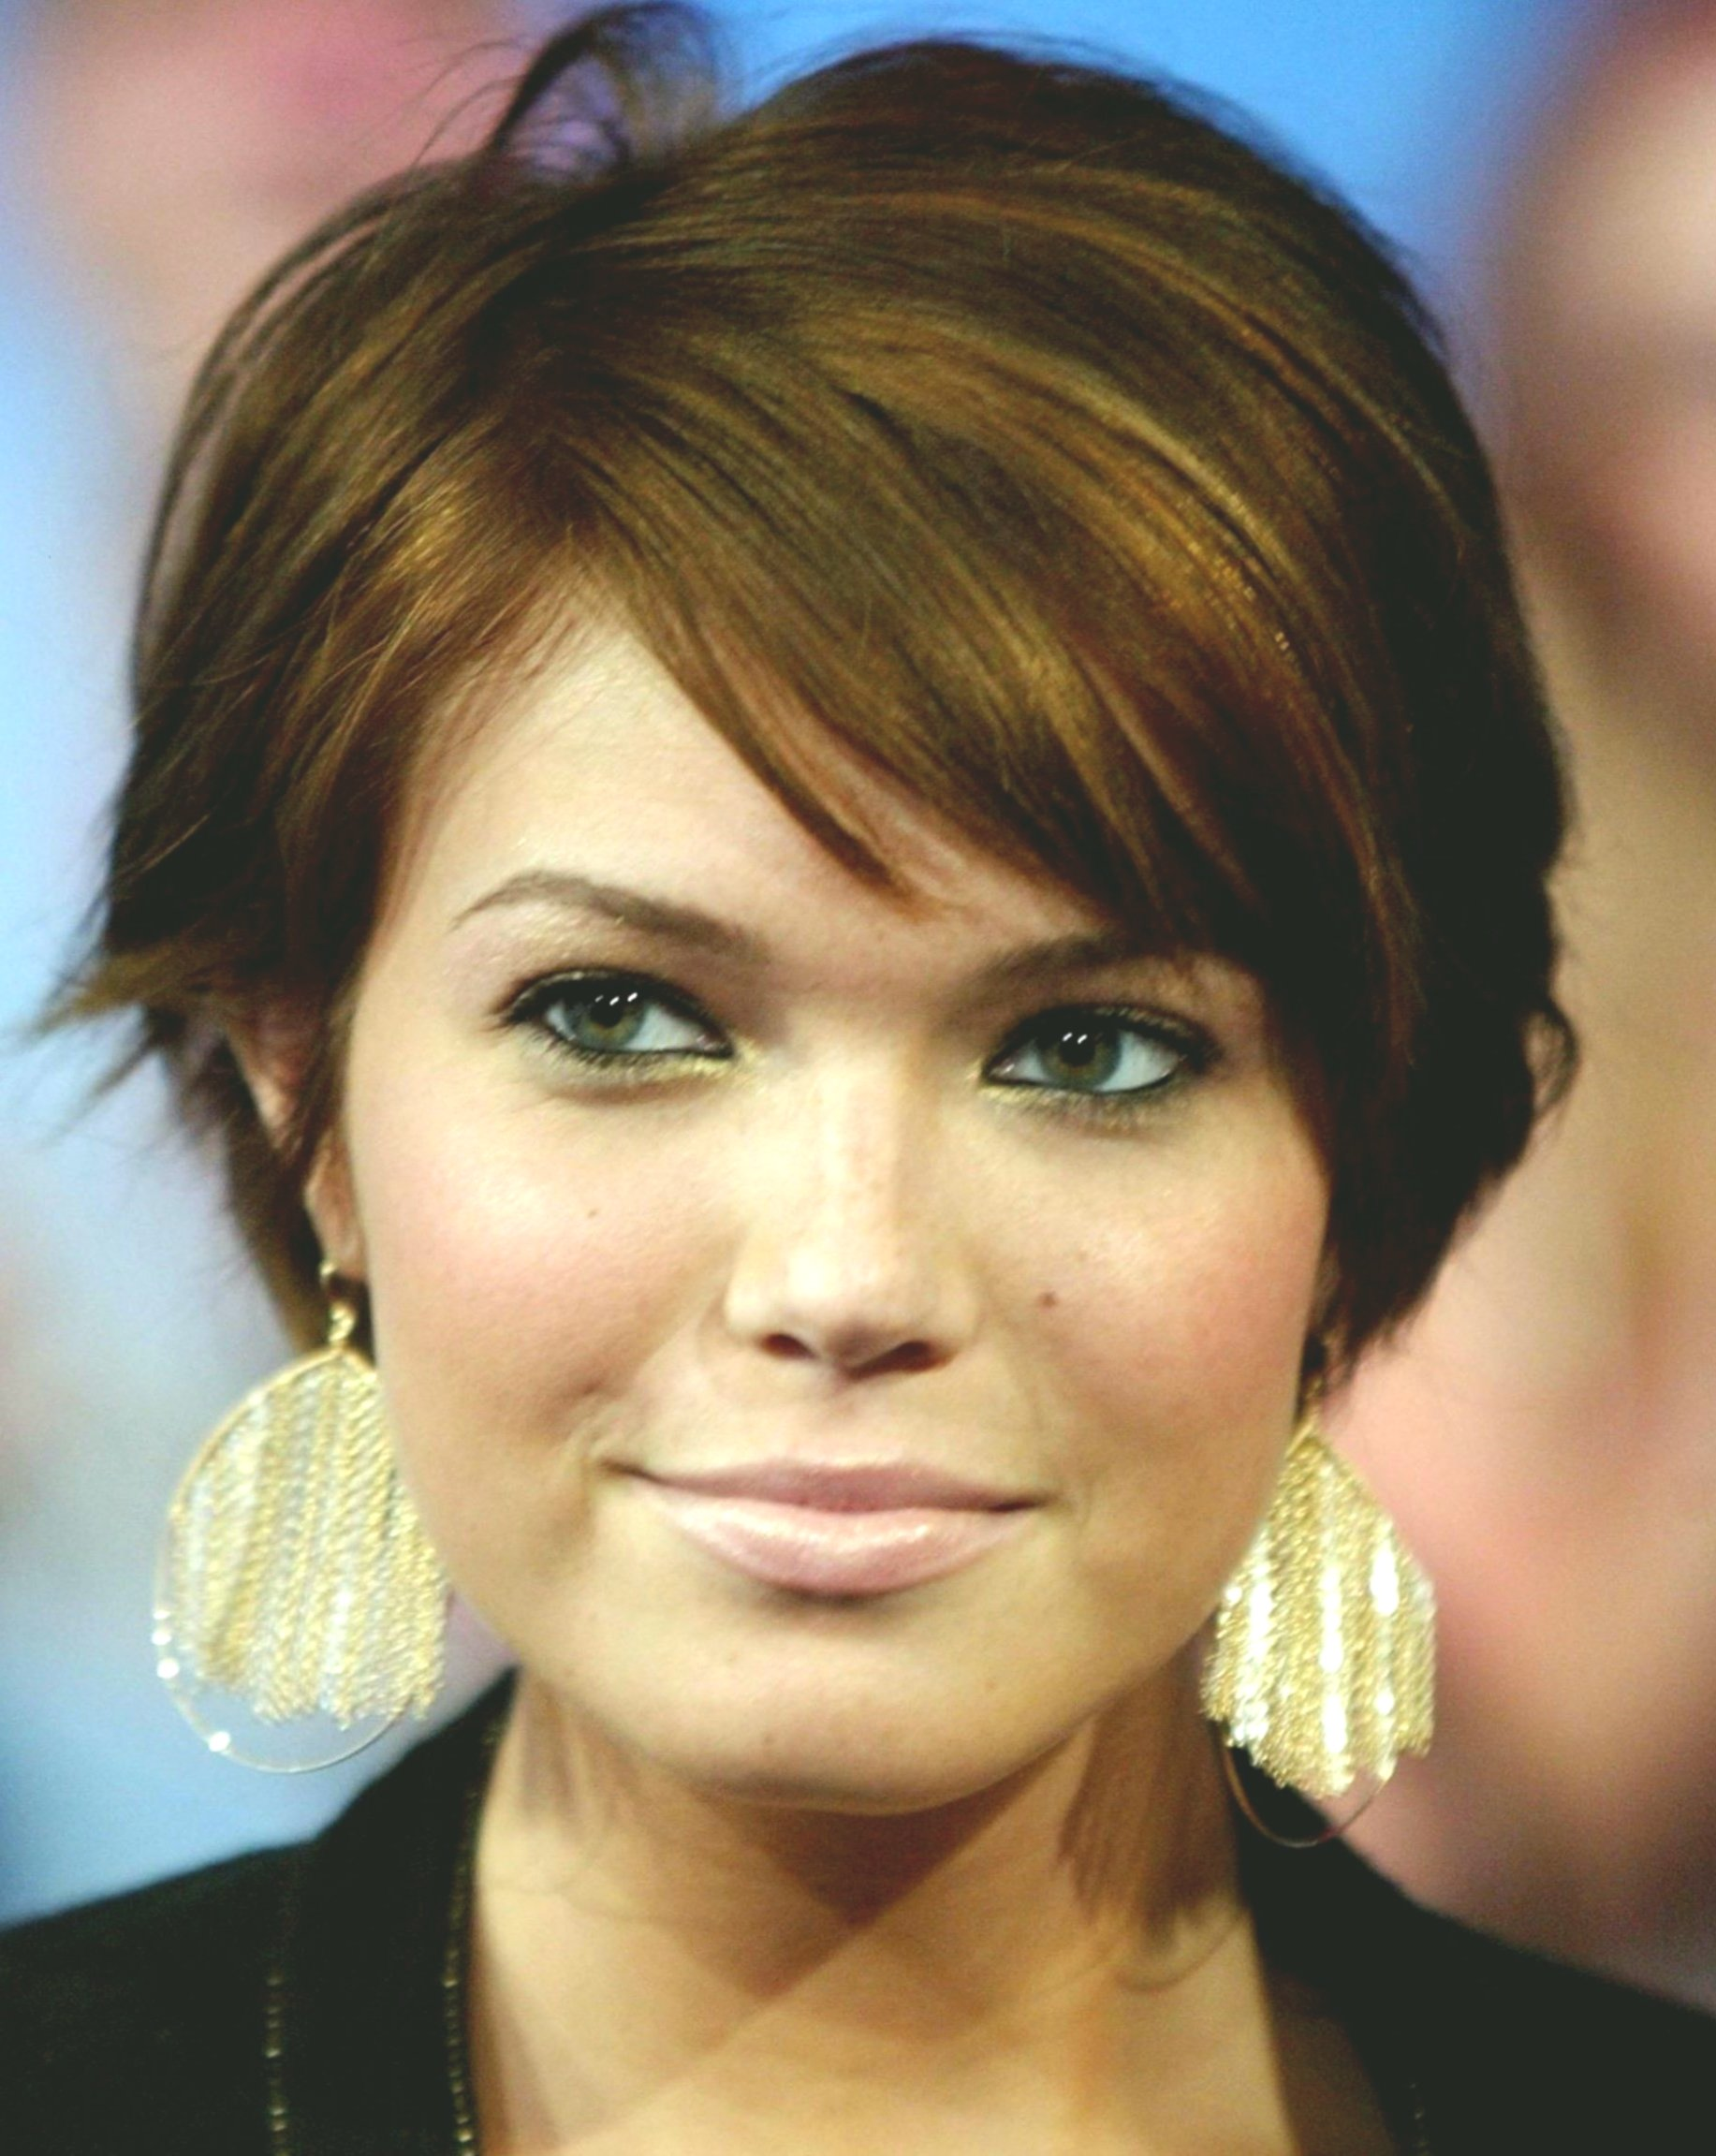 inspirational hairstyles for women portrait-Superb Hairstyles For Women Image